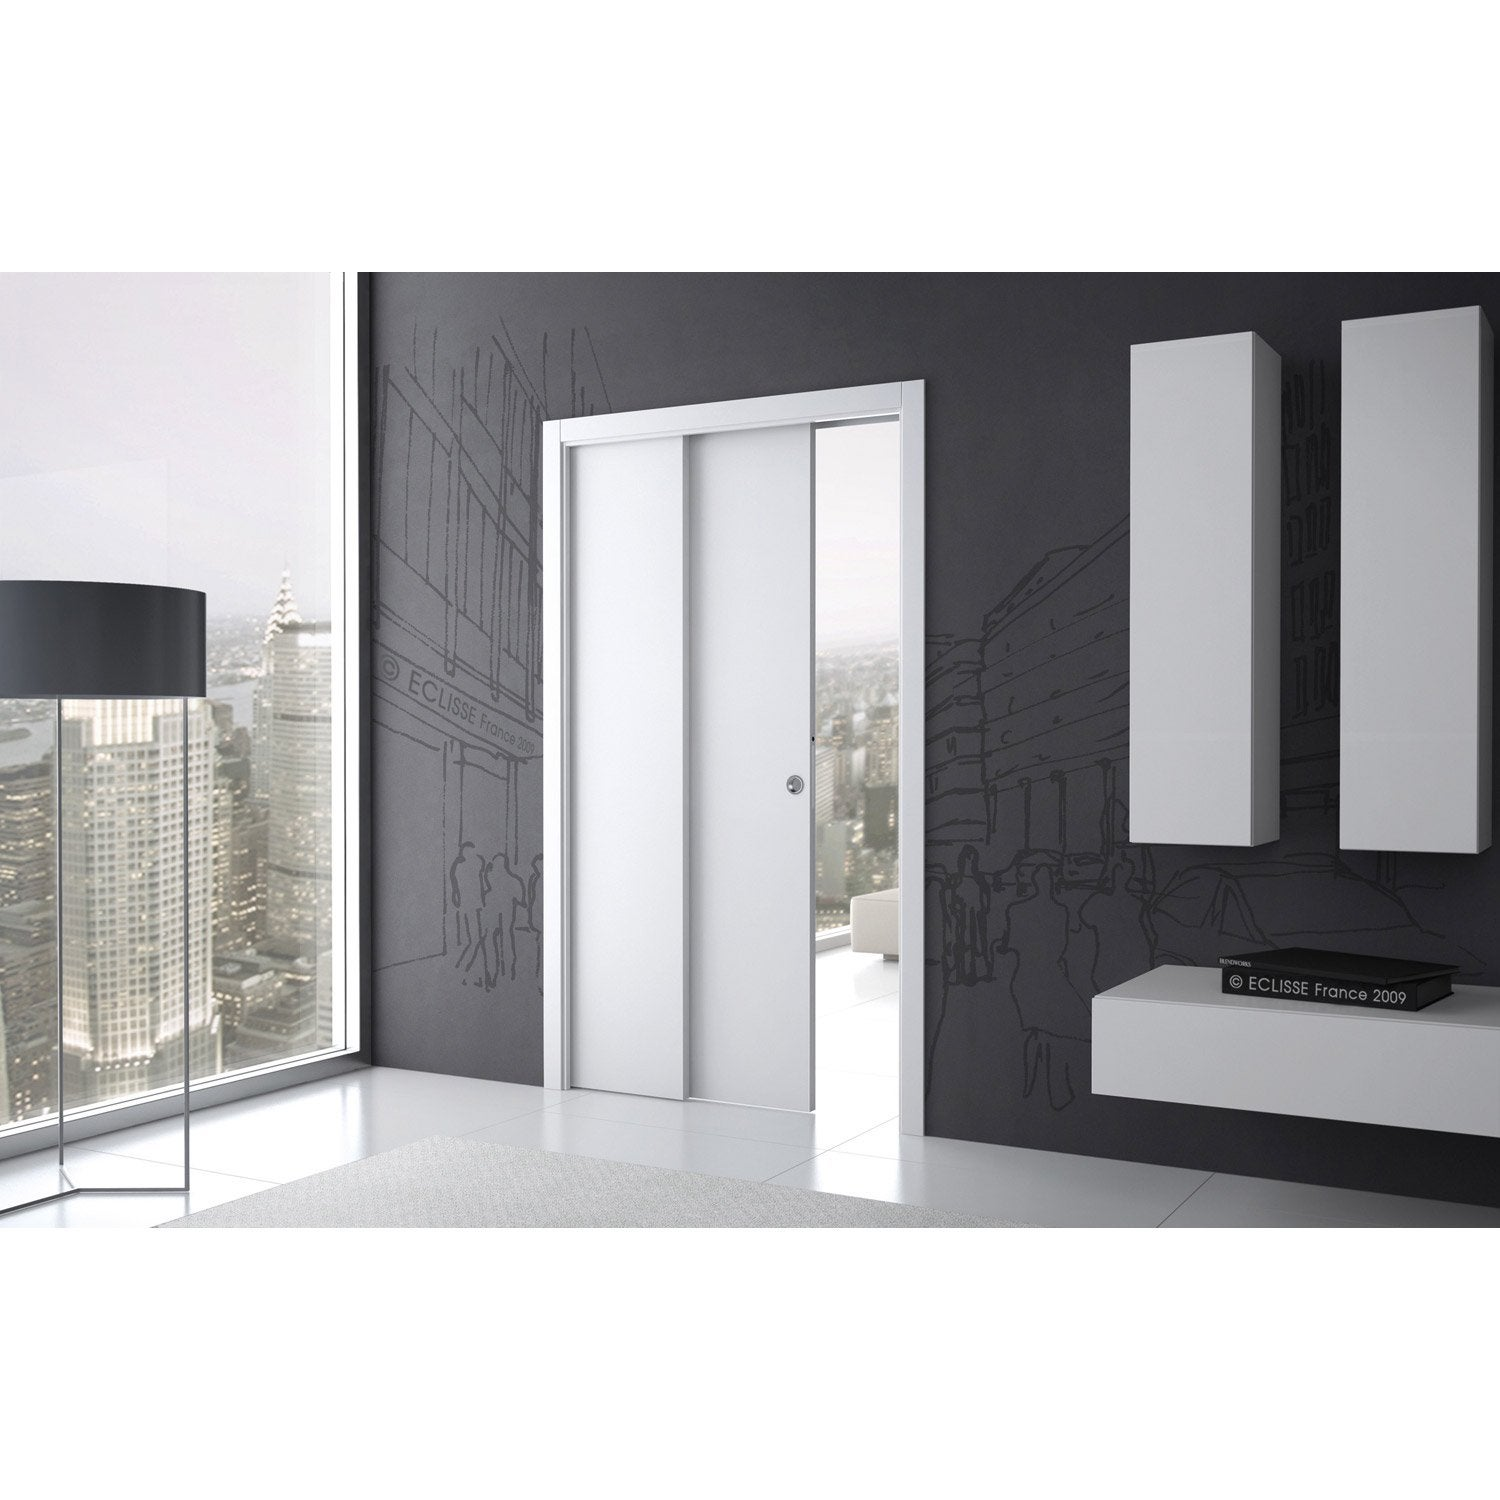 syst me galandage aluminium t lescopique eclisse 2x73 cm leroy merlin. Black Bedroom Furniture Sets. Home Design Ideas